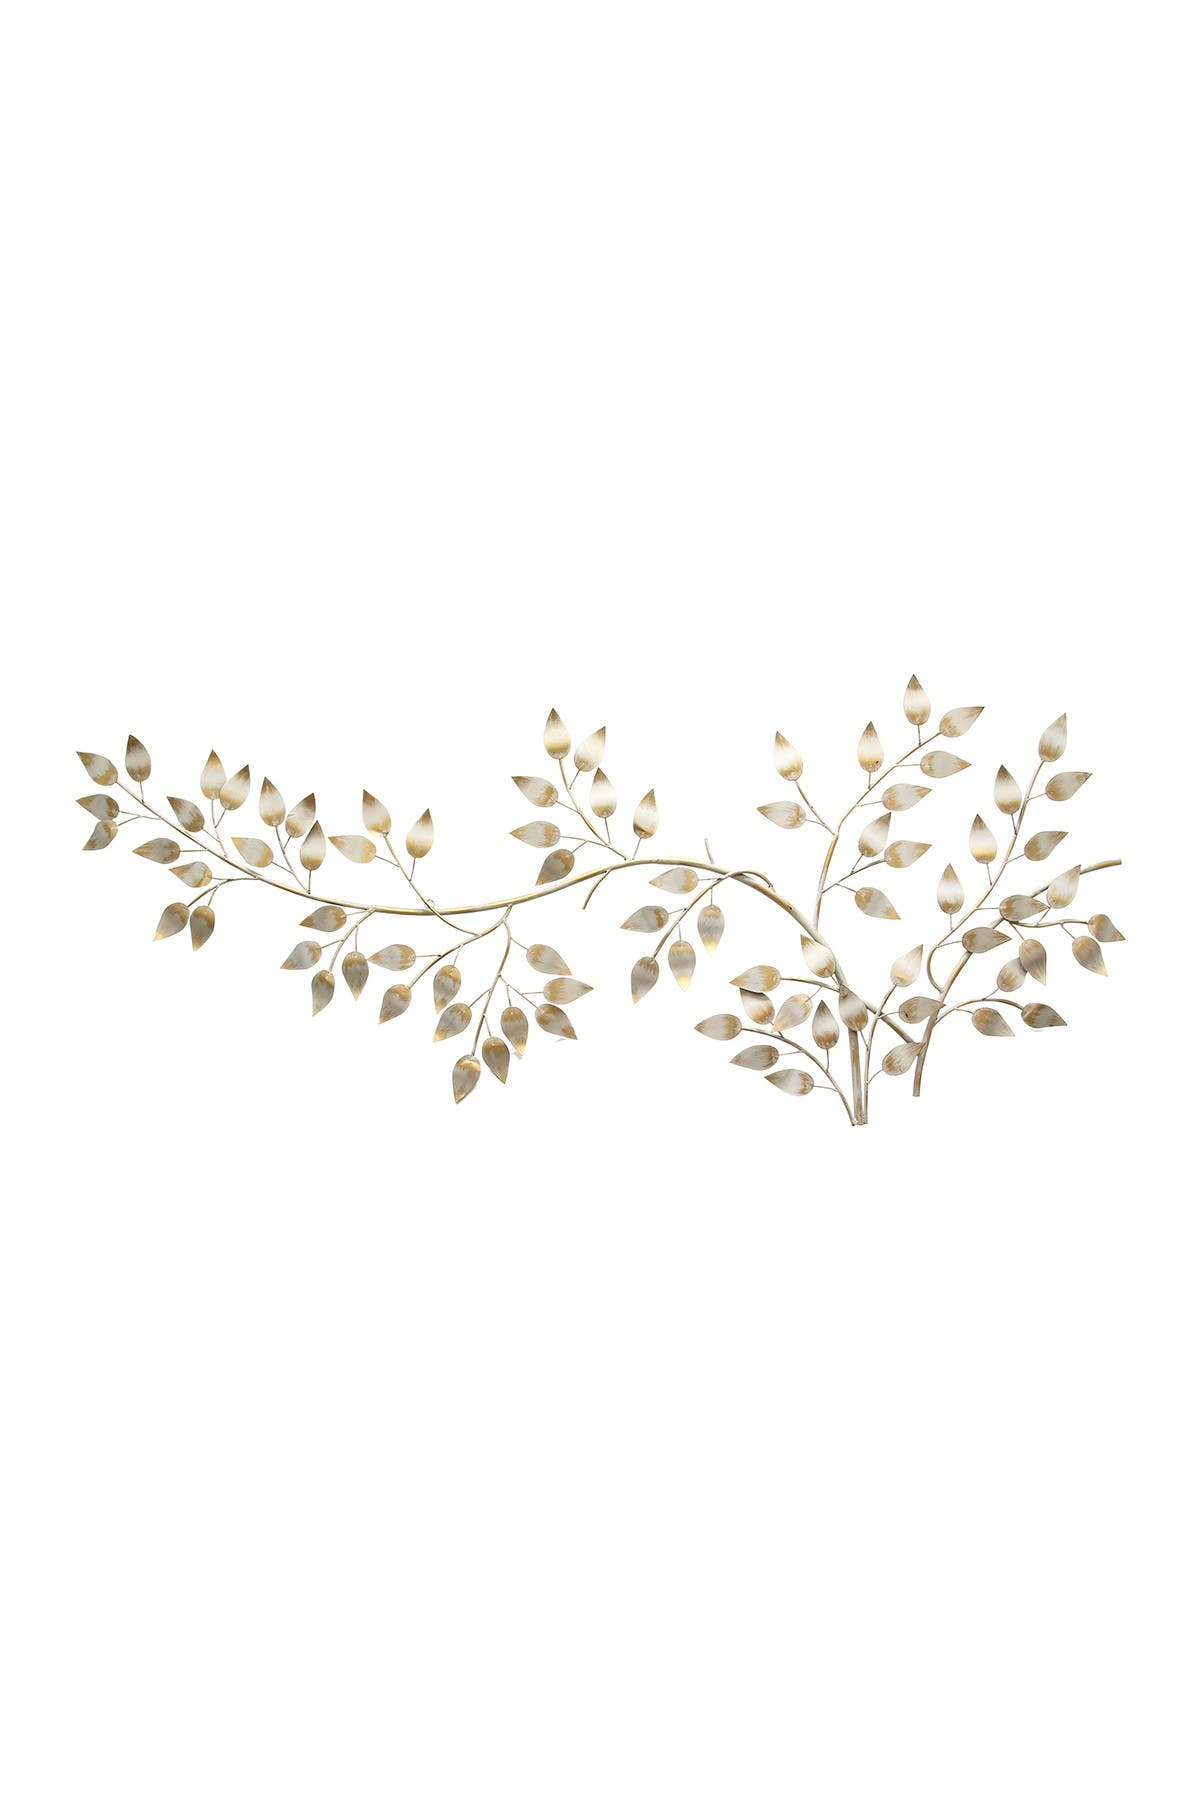 Image of Stratton Home Metallic Gold/White Flowing Leaves Wall Decor